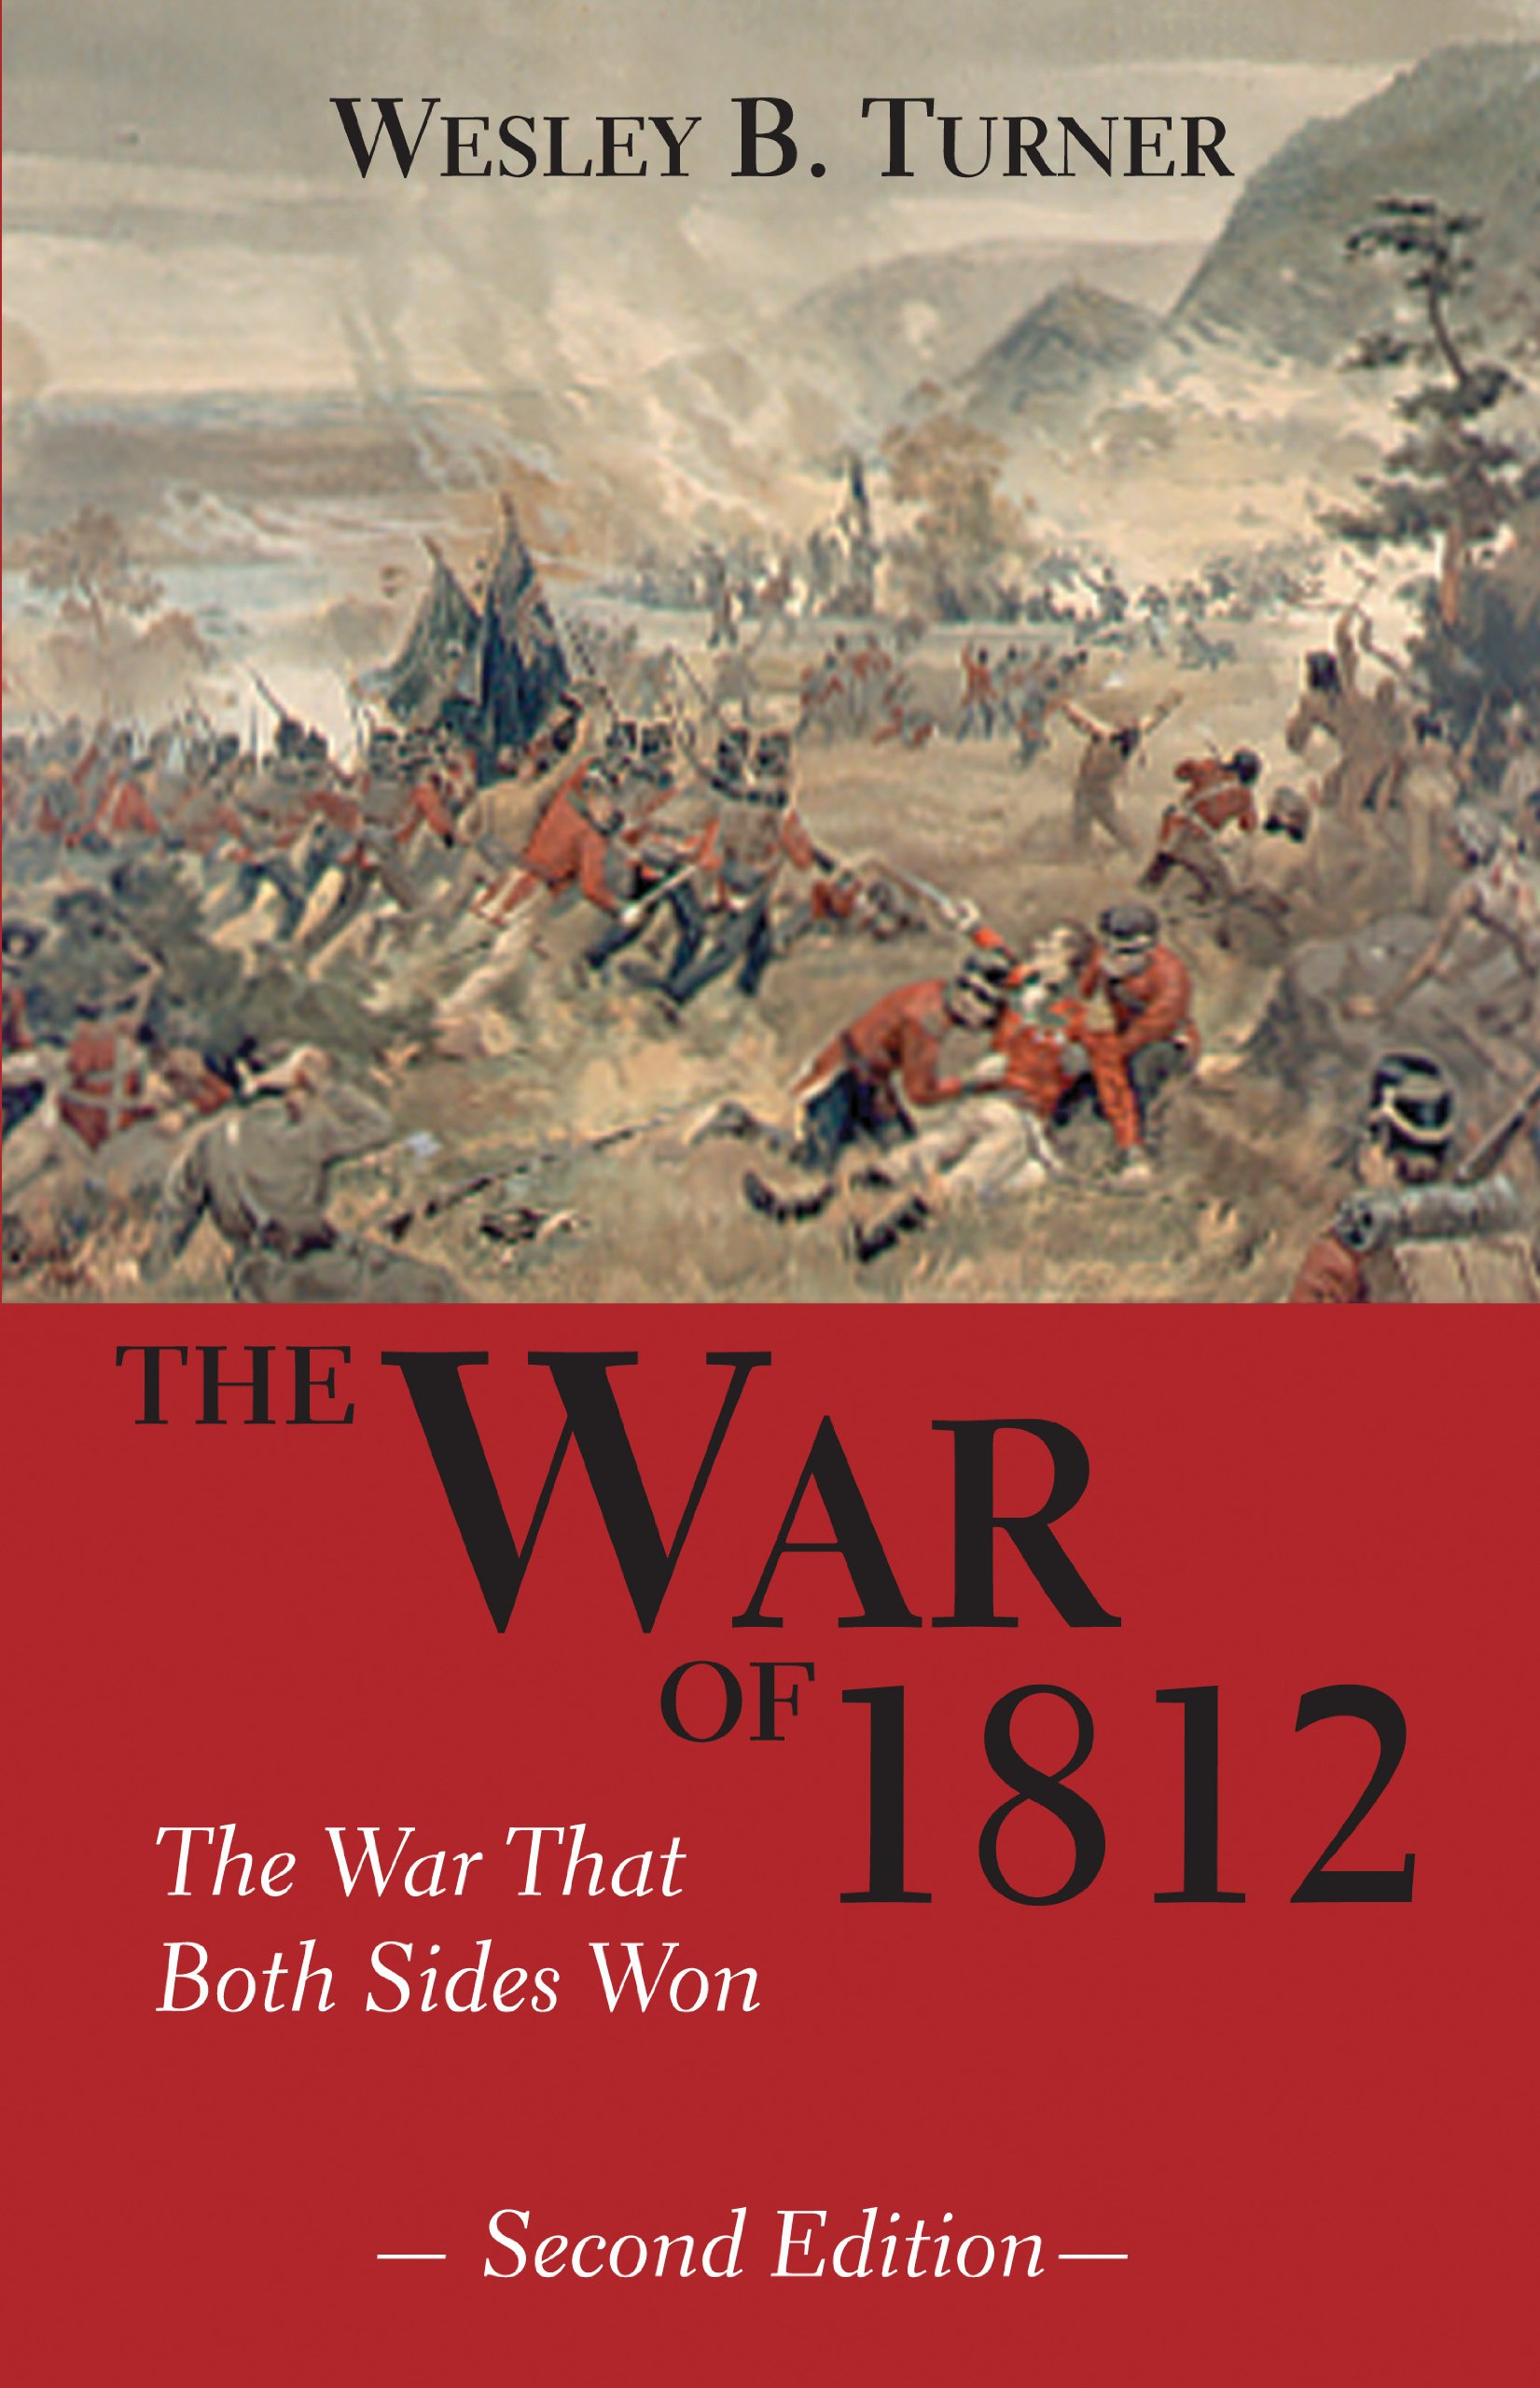 The War of 1812: The War That Both Sides Won: Wesley B. Turner:  9781550023367: Amazon.com: Books